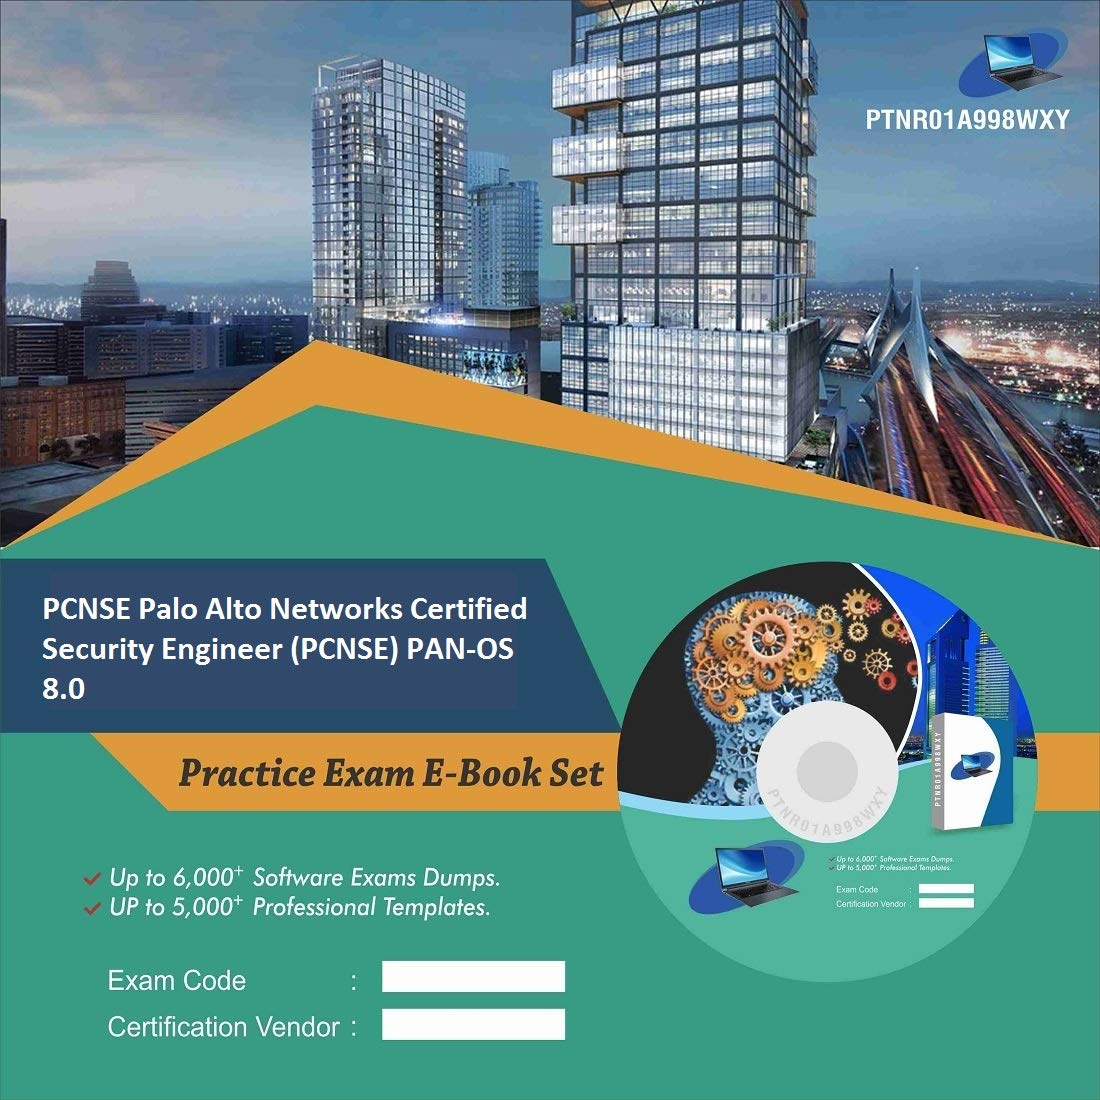 PCNSE Palo Alto Networks Certified Security Engineer (PCNSE